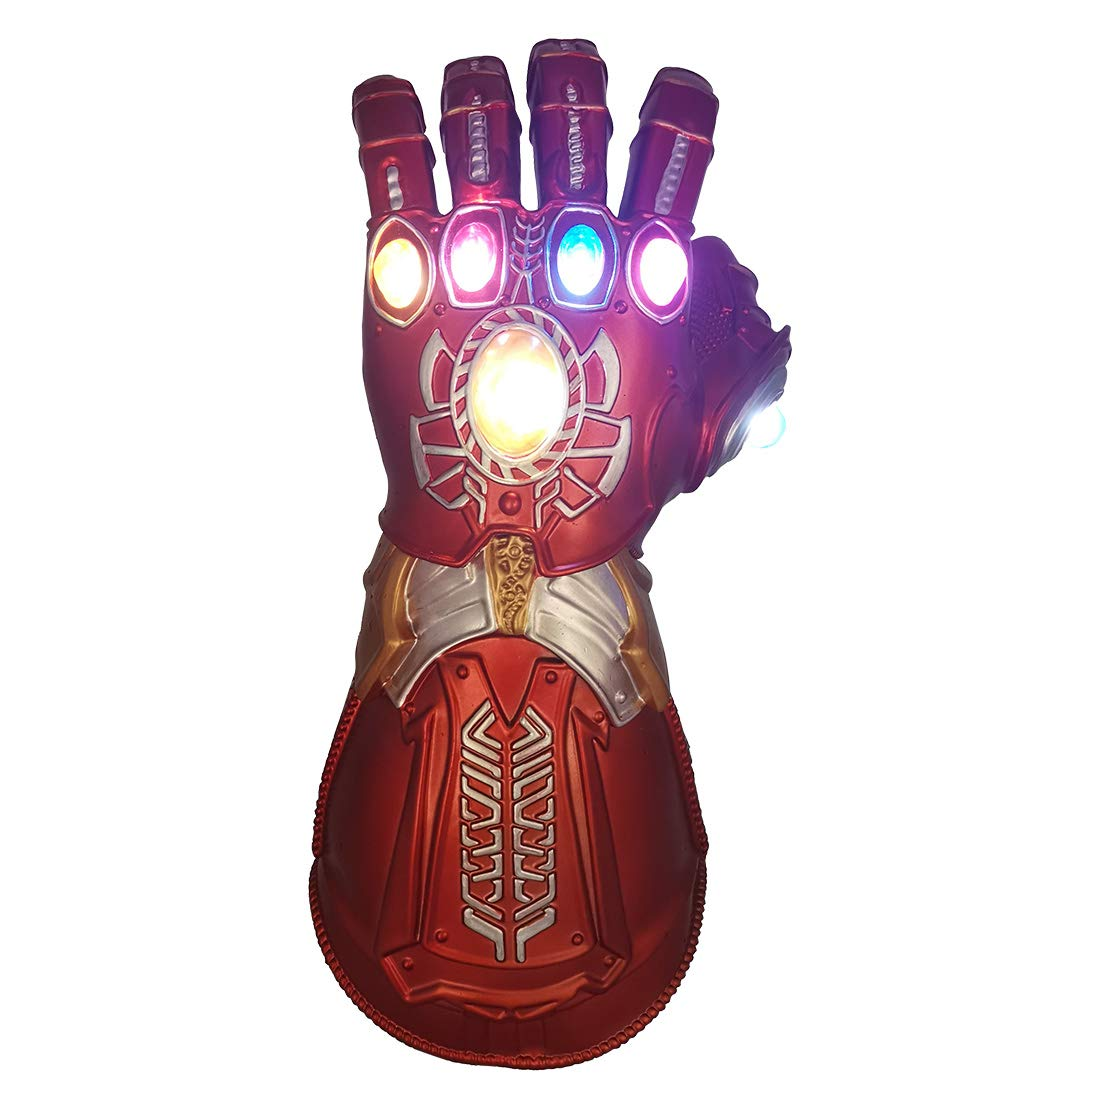 Bulex Thanos Glove LED Light Up Infinity Gems Gauntlet Toy (Kids Size Red)